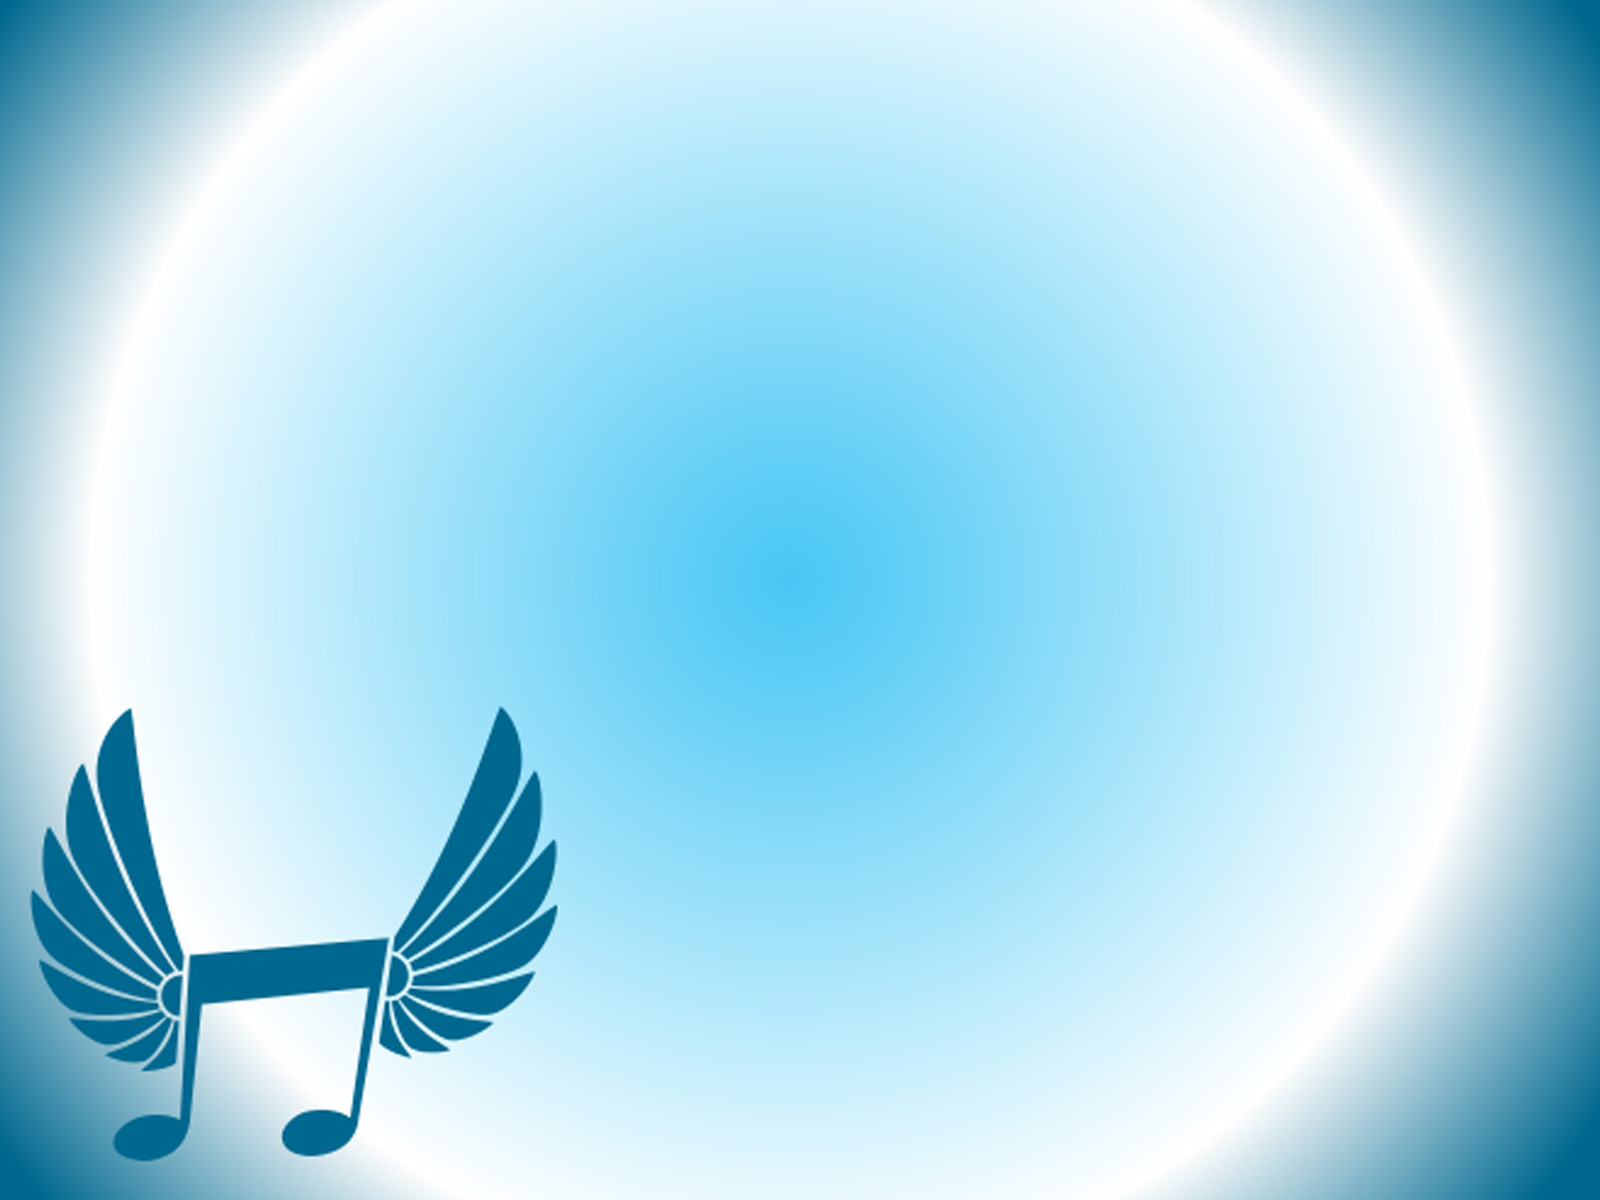 winged music icon backgrounds blue  music  white clipart flower pot black and white flower clipart black and white